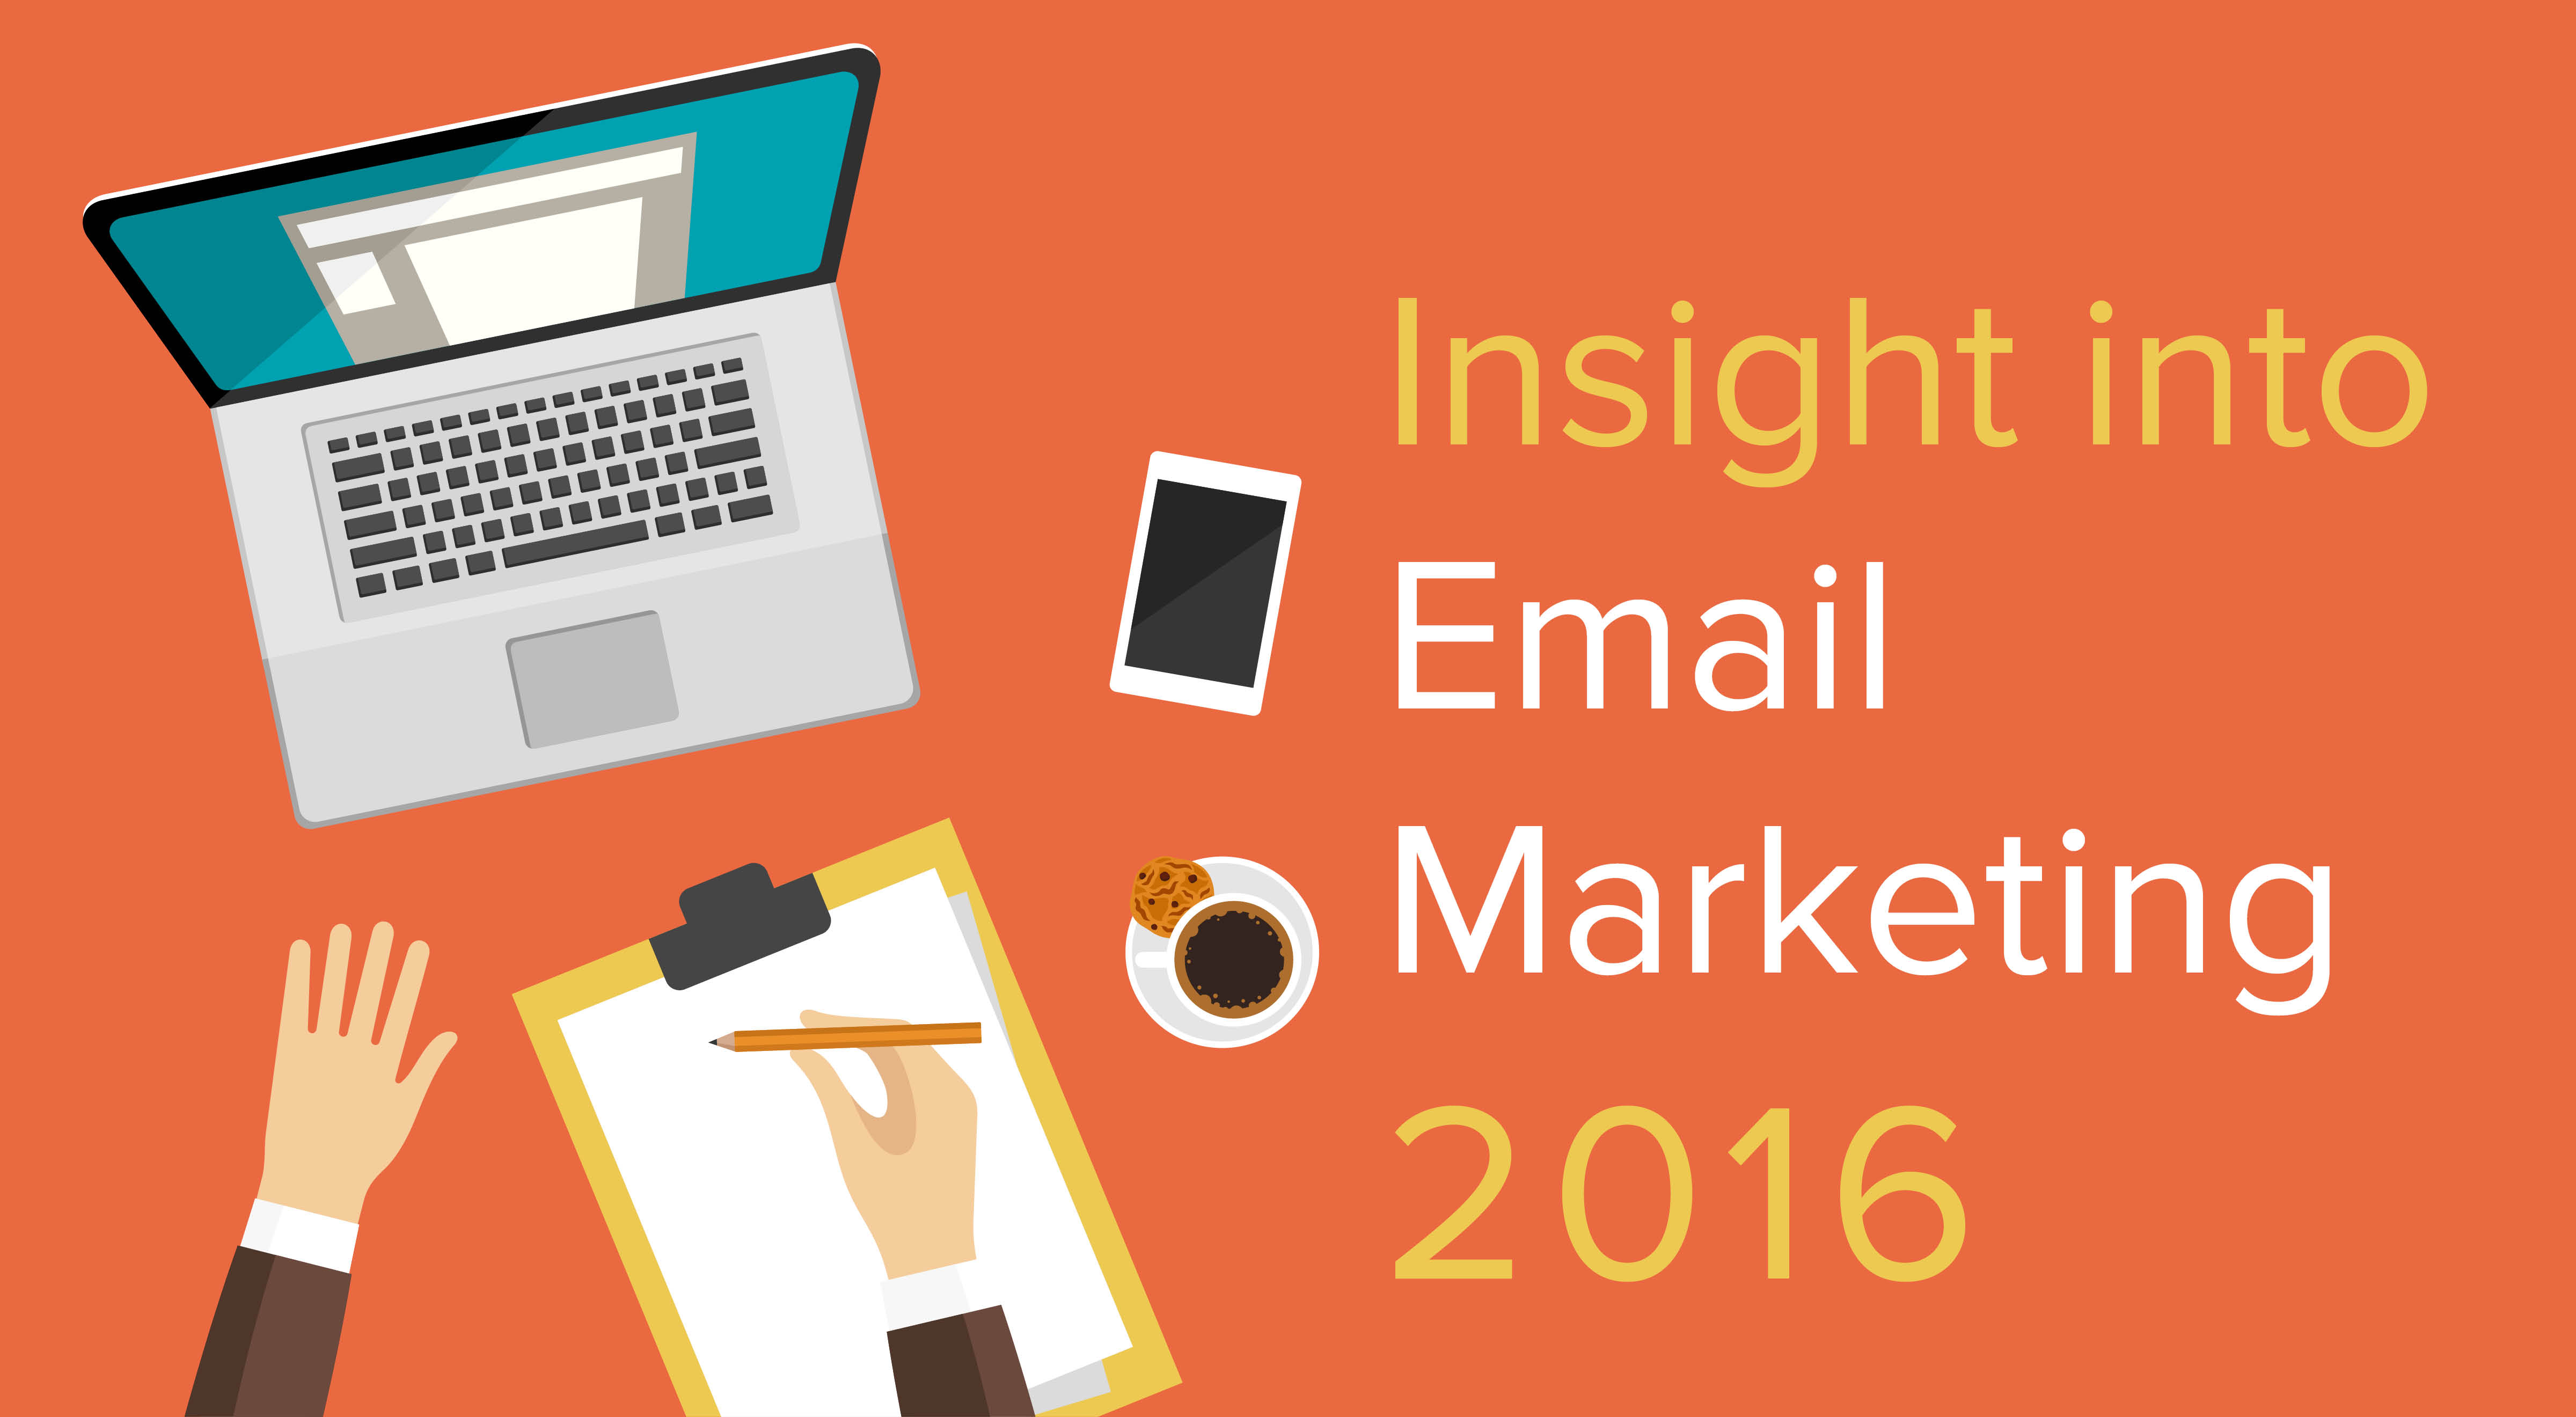 email-marketing-2016-web-predictions